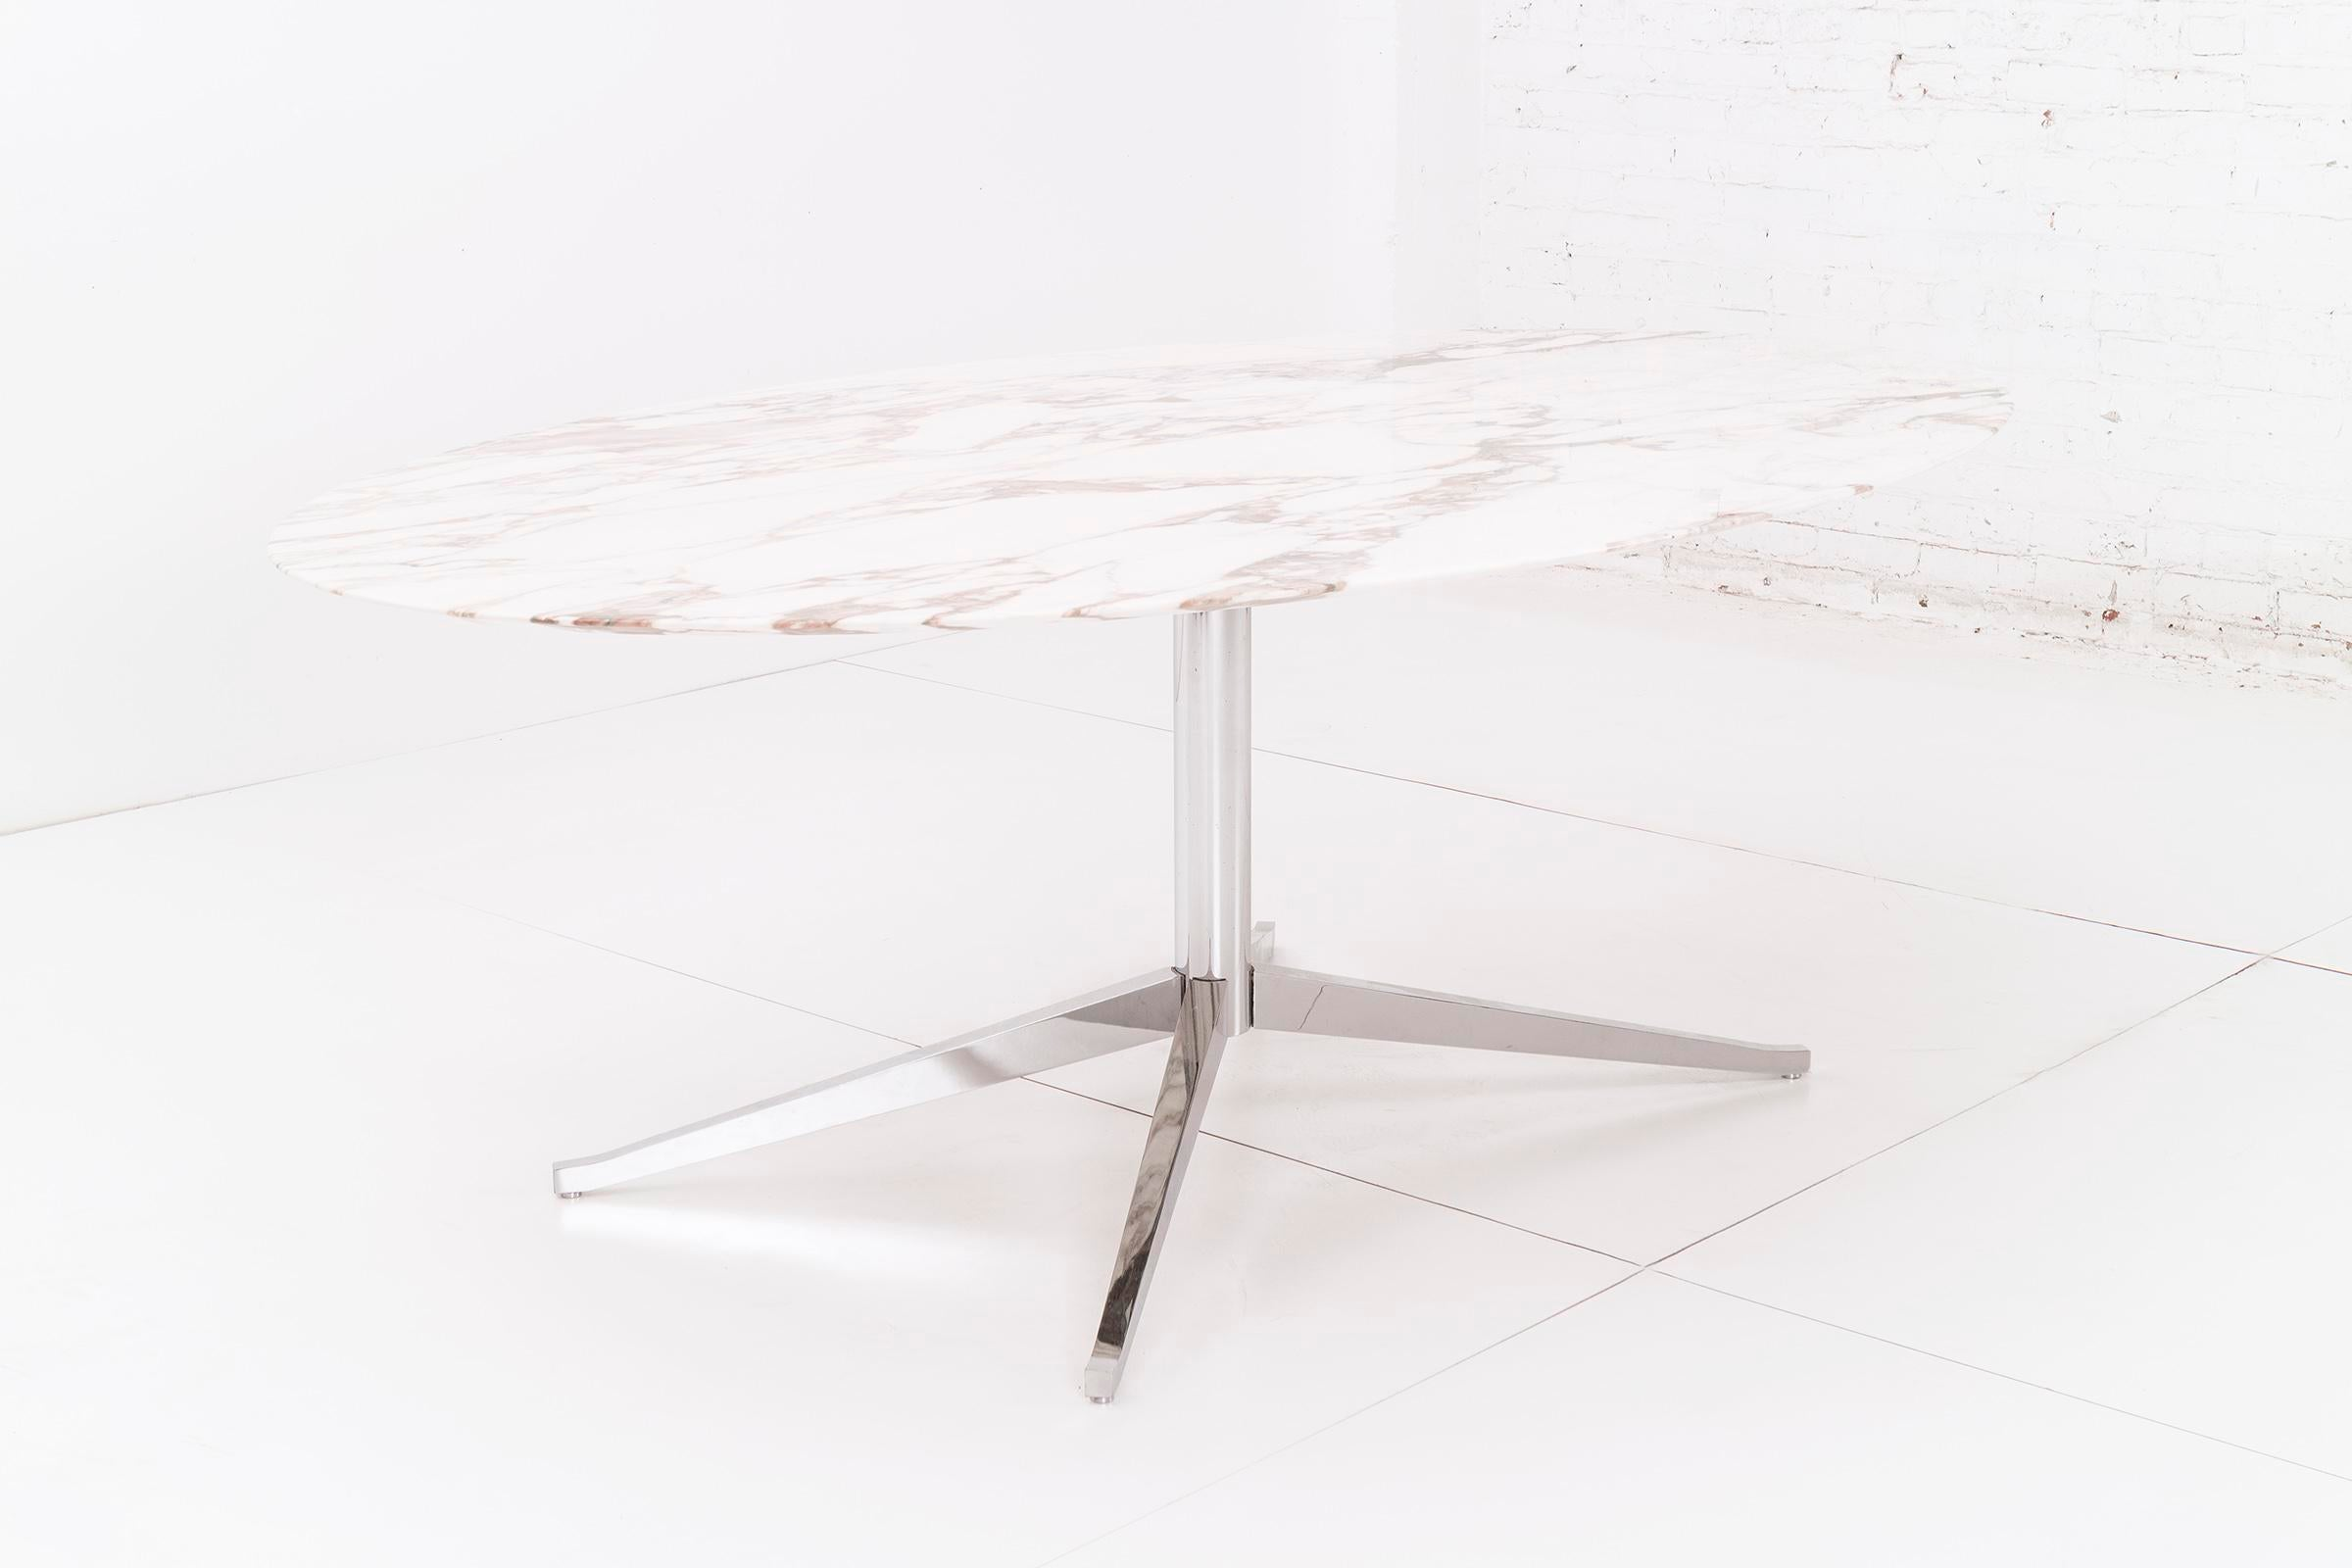 Chrome Plated Steel Pedestal Based Table With Calacatta Marble Top. This  Versatile Piece Can